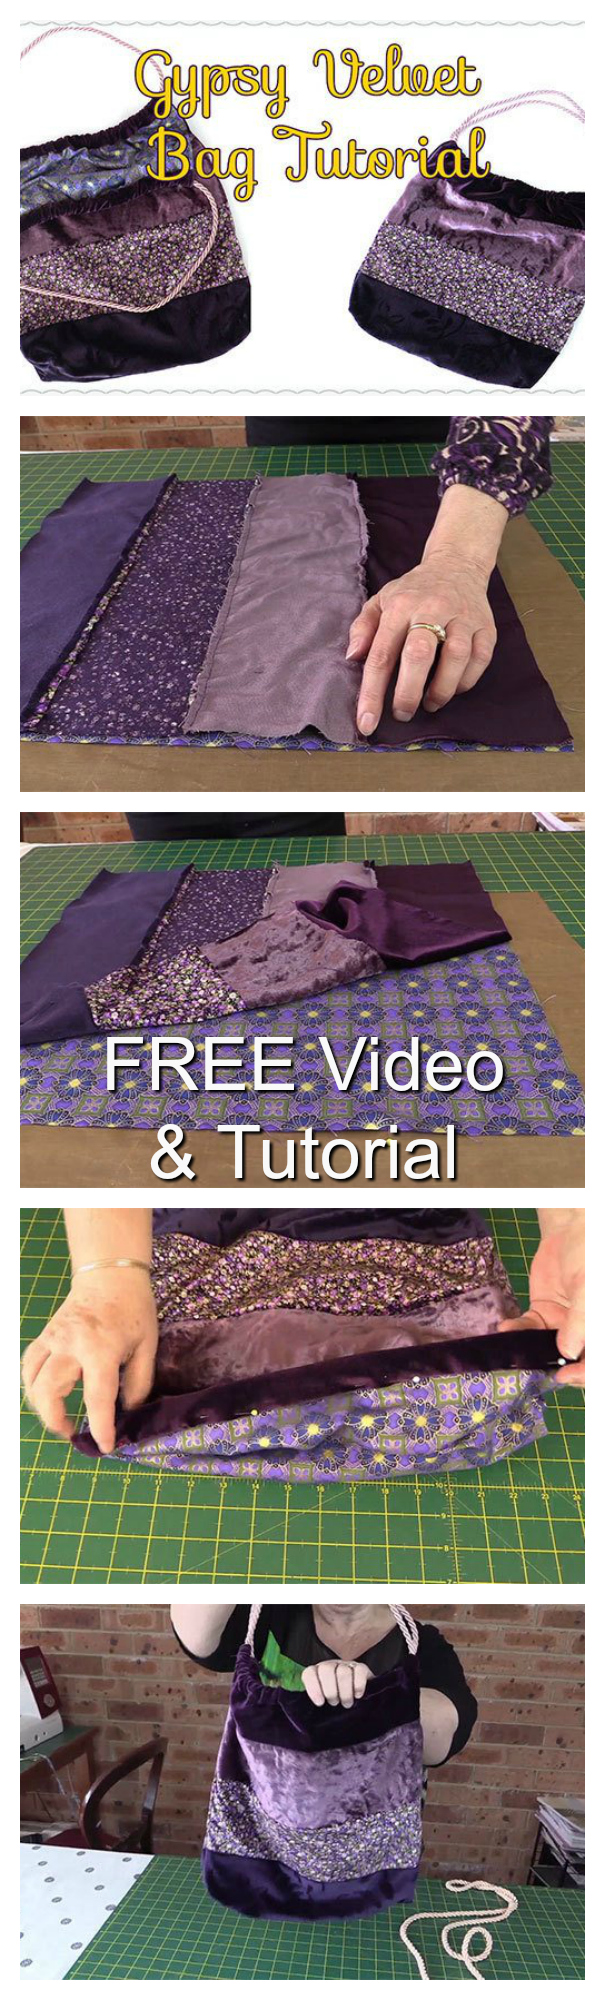 Here's a really comprehensive FREE video and tutorial showing you how to make a Velvet Gypsy Tote Bag. This bag was actually made from recycled velvet - old velvet skirts and tops - that made the project both eco-friendly and economical as well.